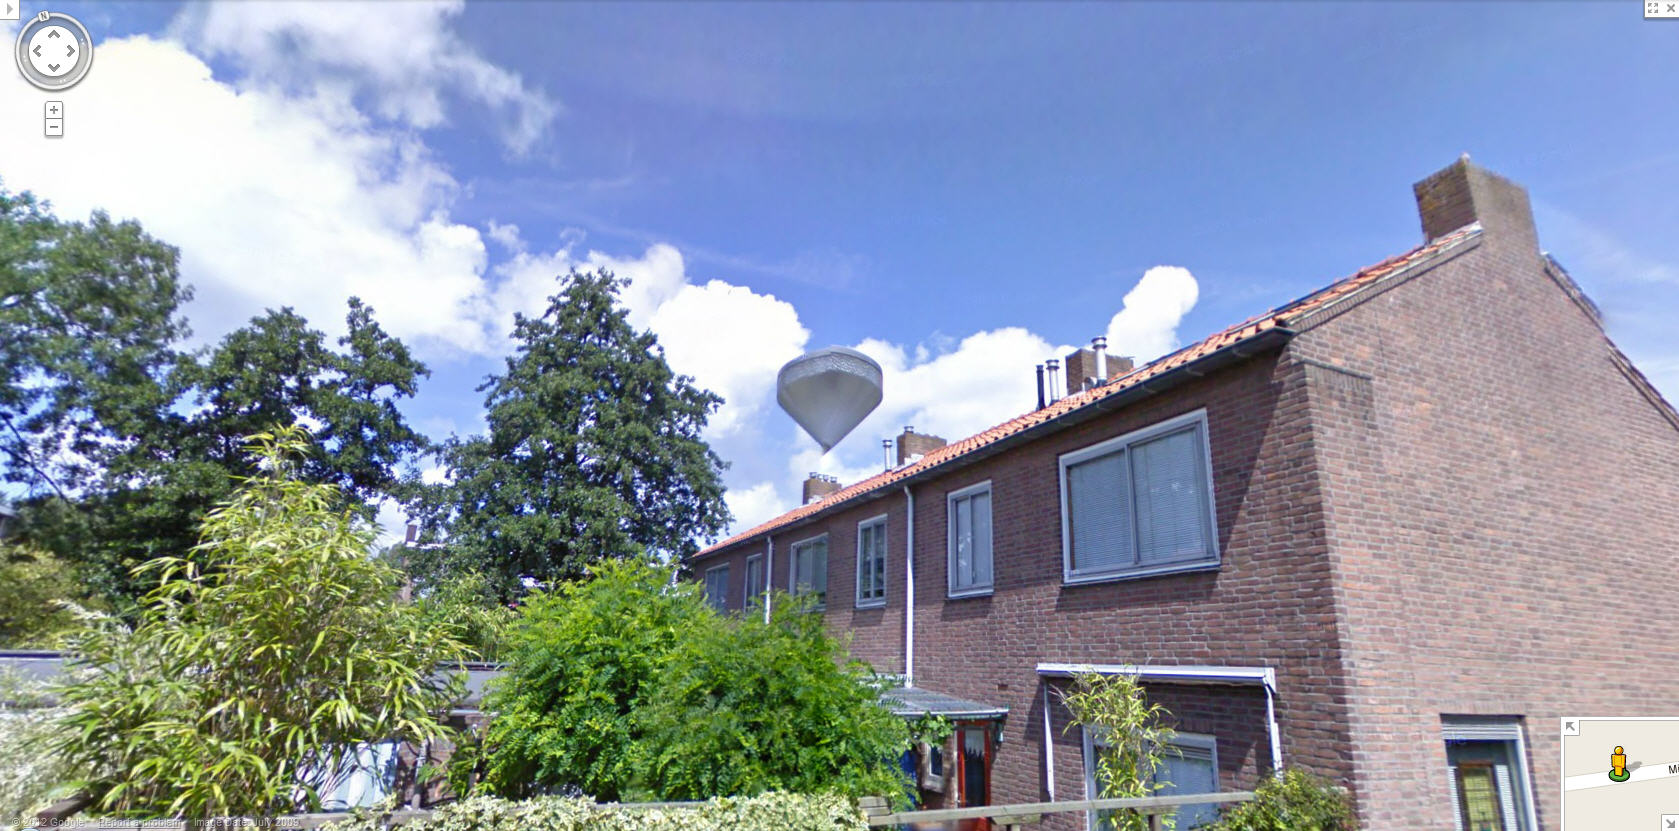 google-street-view-captures-a-ufo-hovering-over-a-house-in-holland